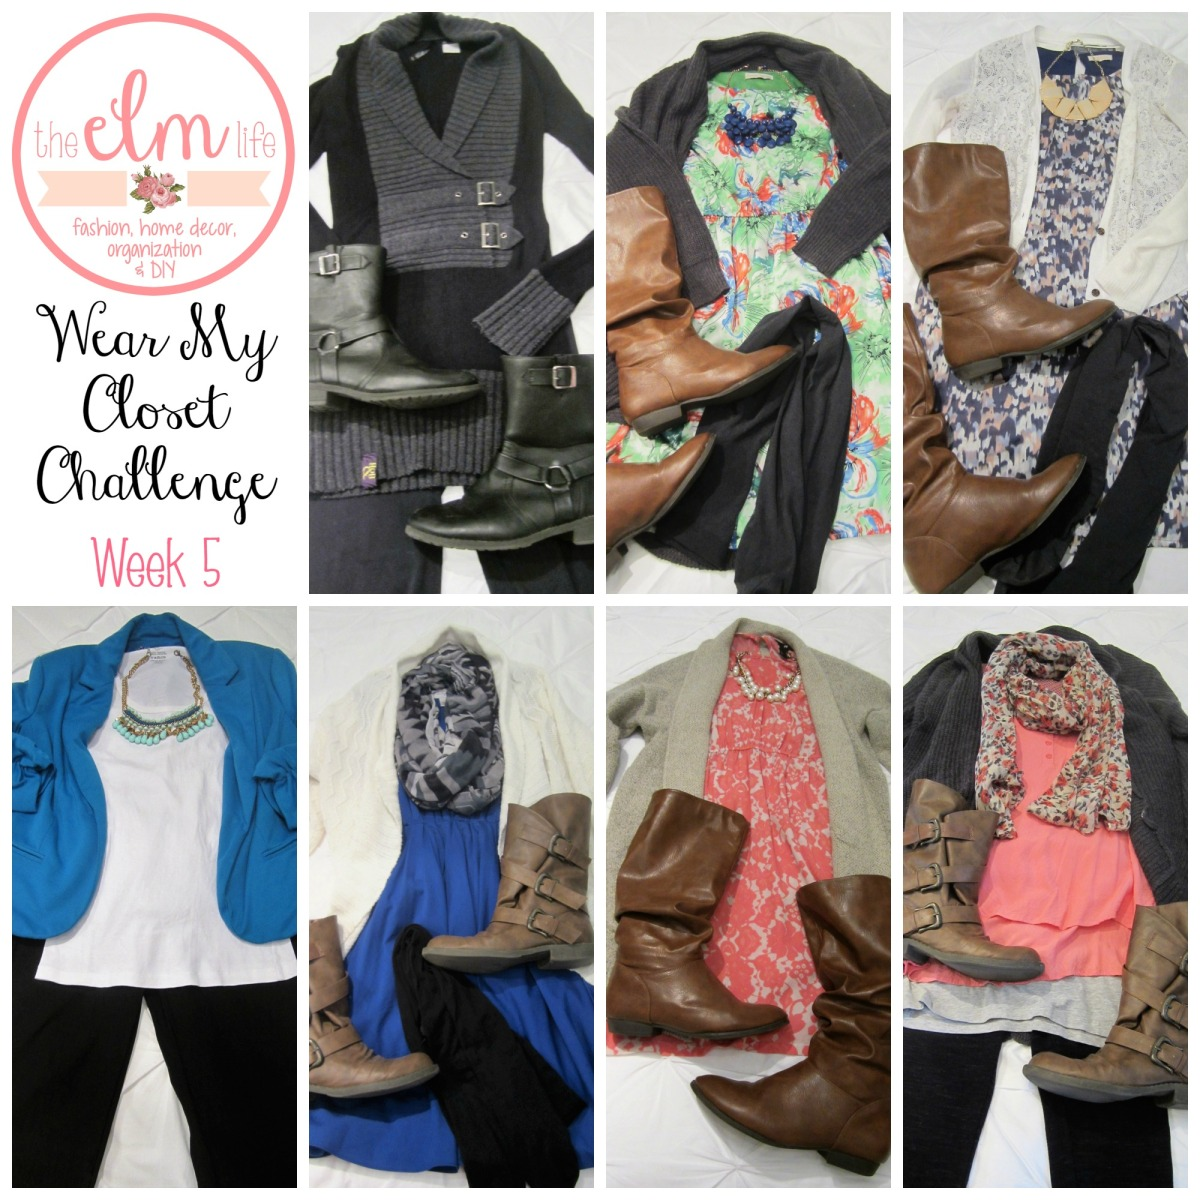 Wear My Closet Challenge - Week 5